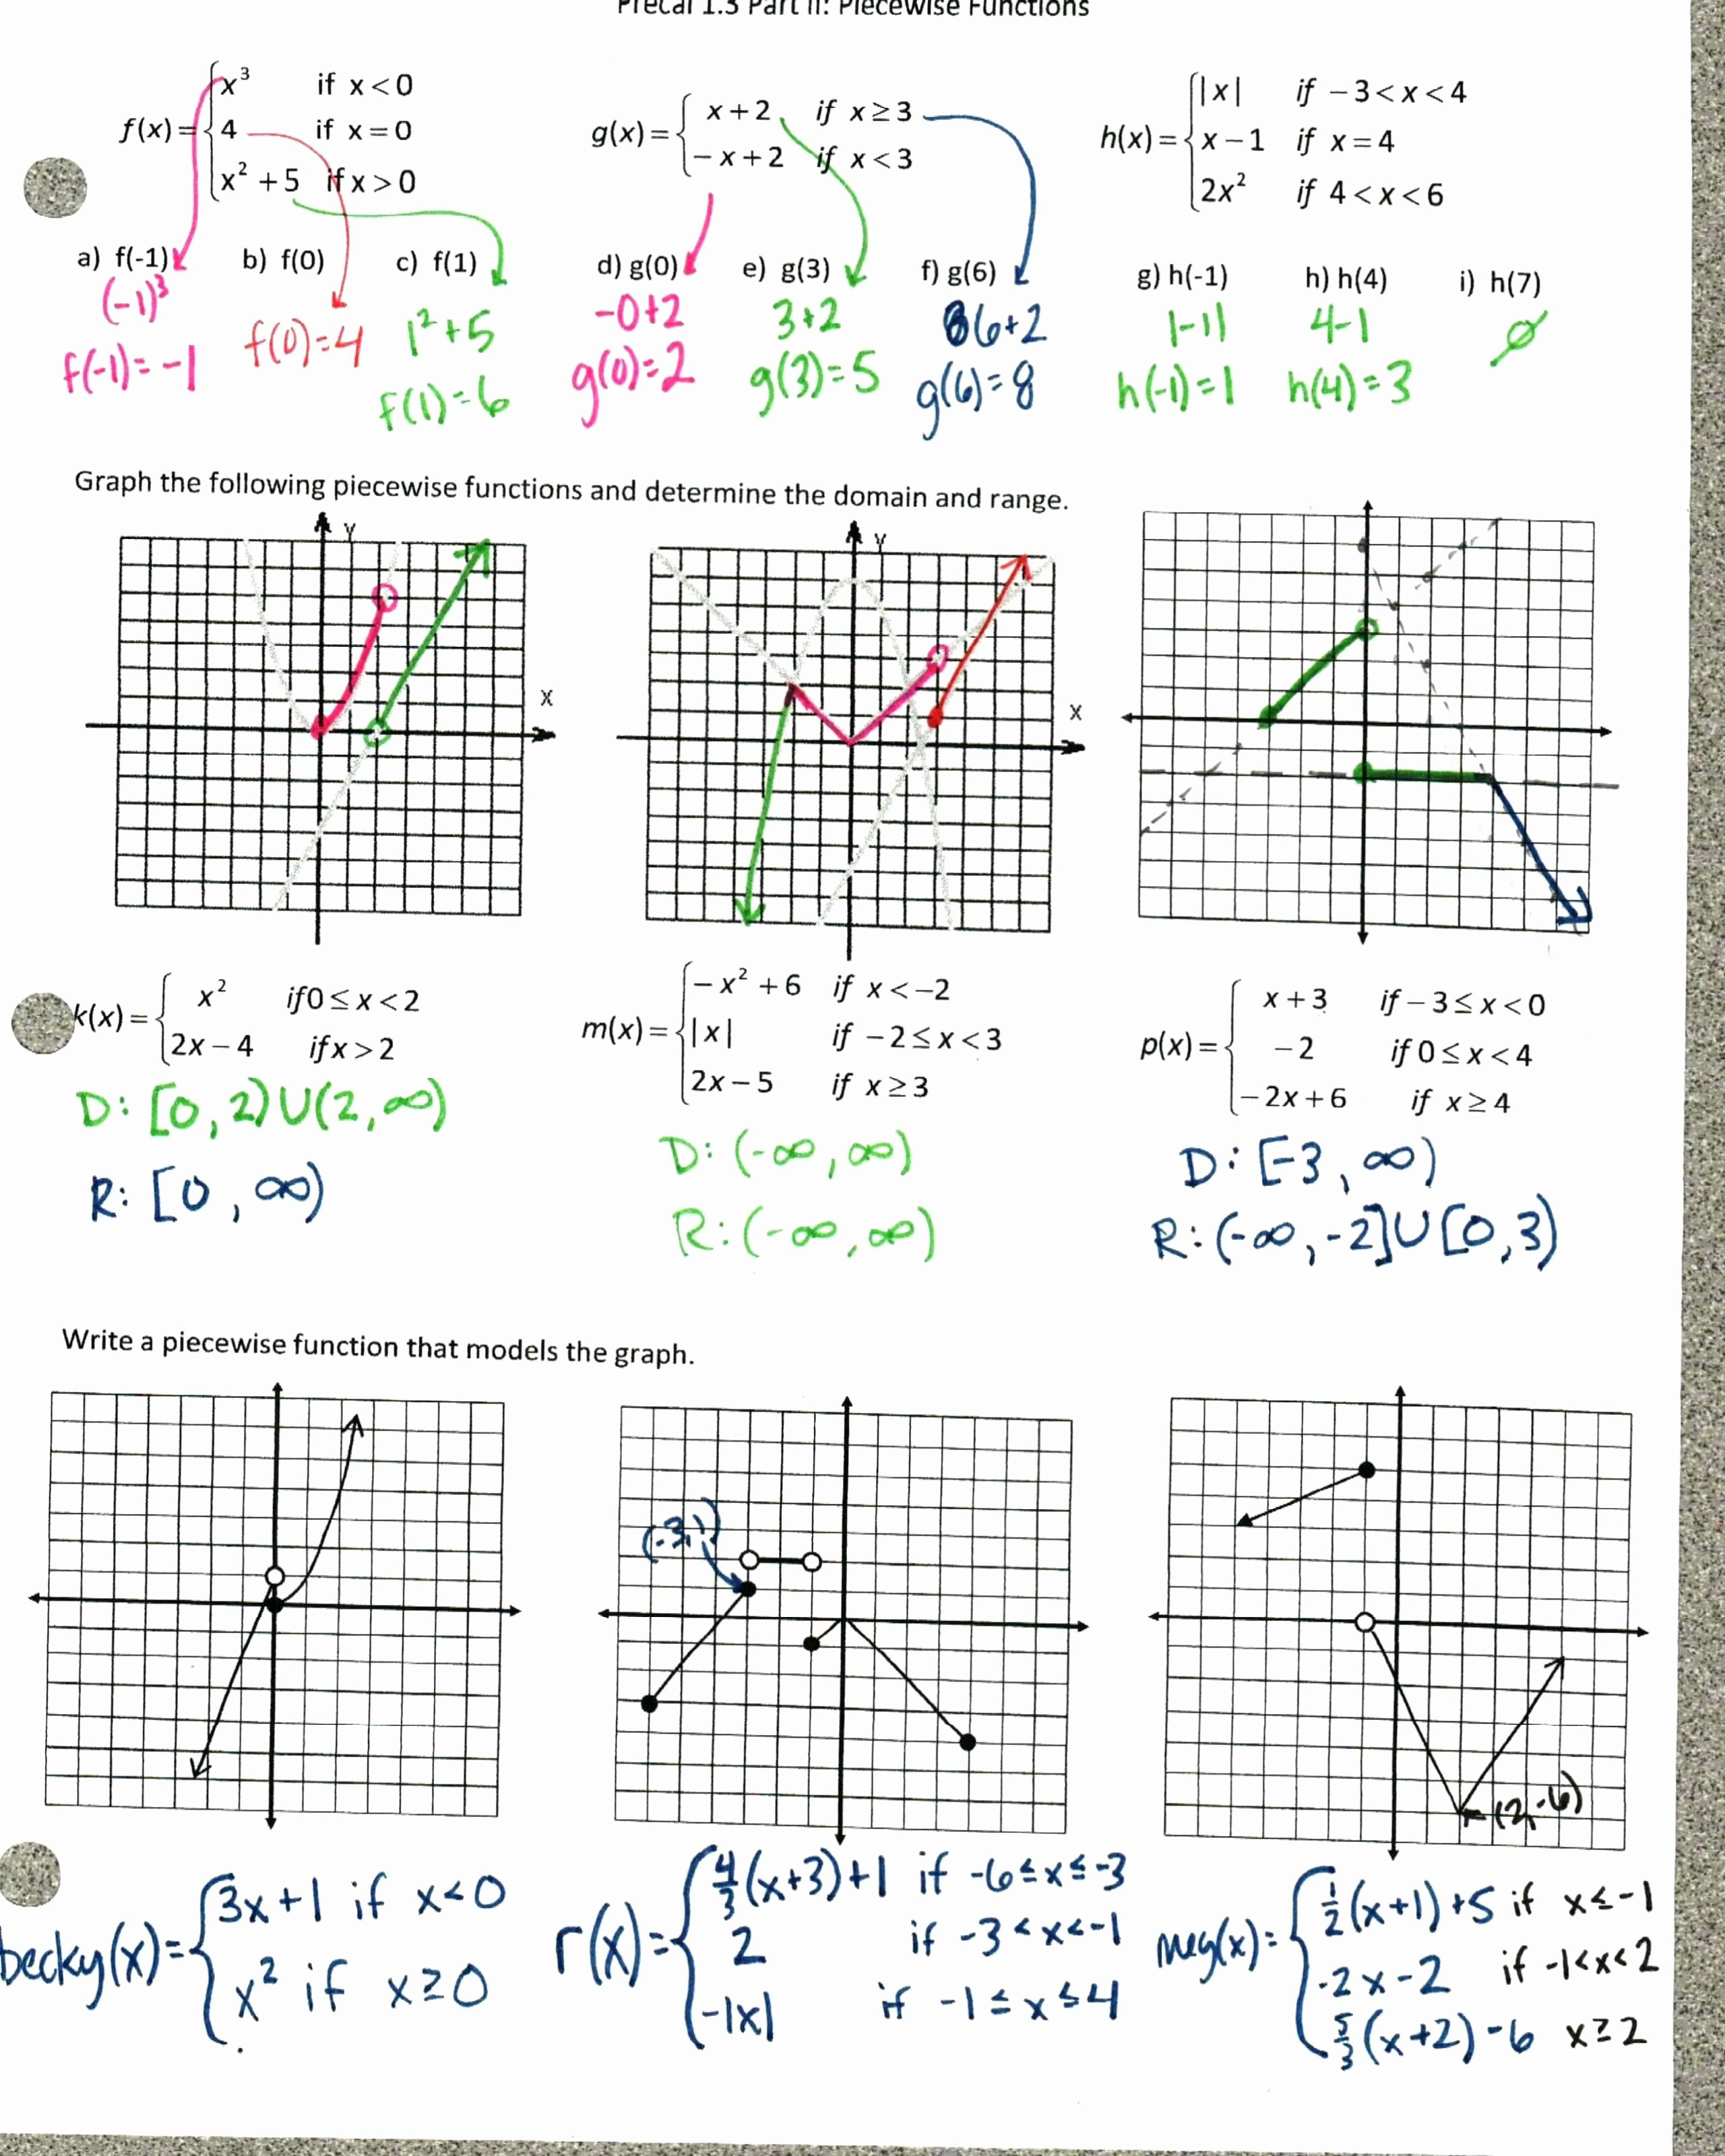 Graphing Quadratic Functions Worksheet Answers Unique Graphing Quadratic Functions Worksheet Answer Key